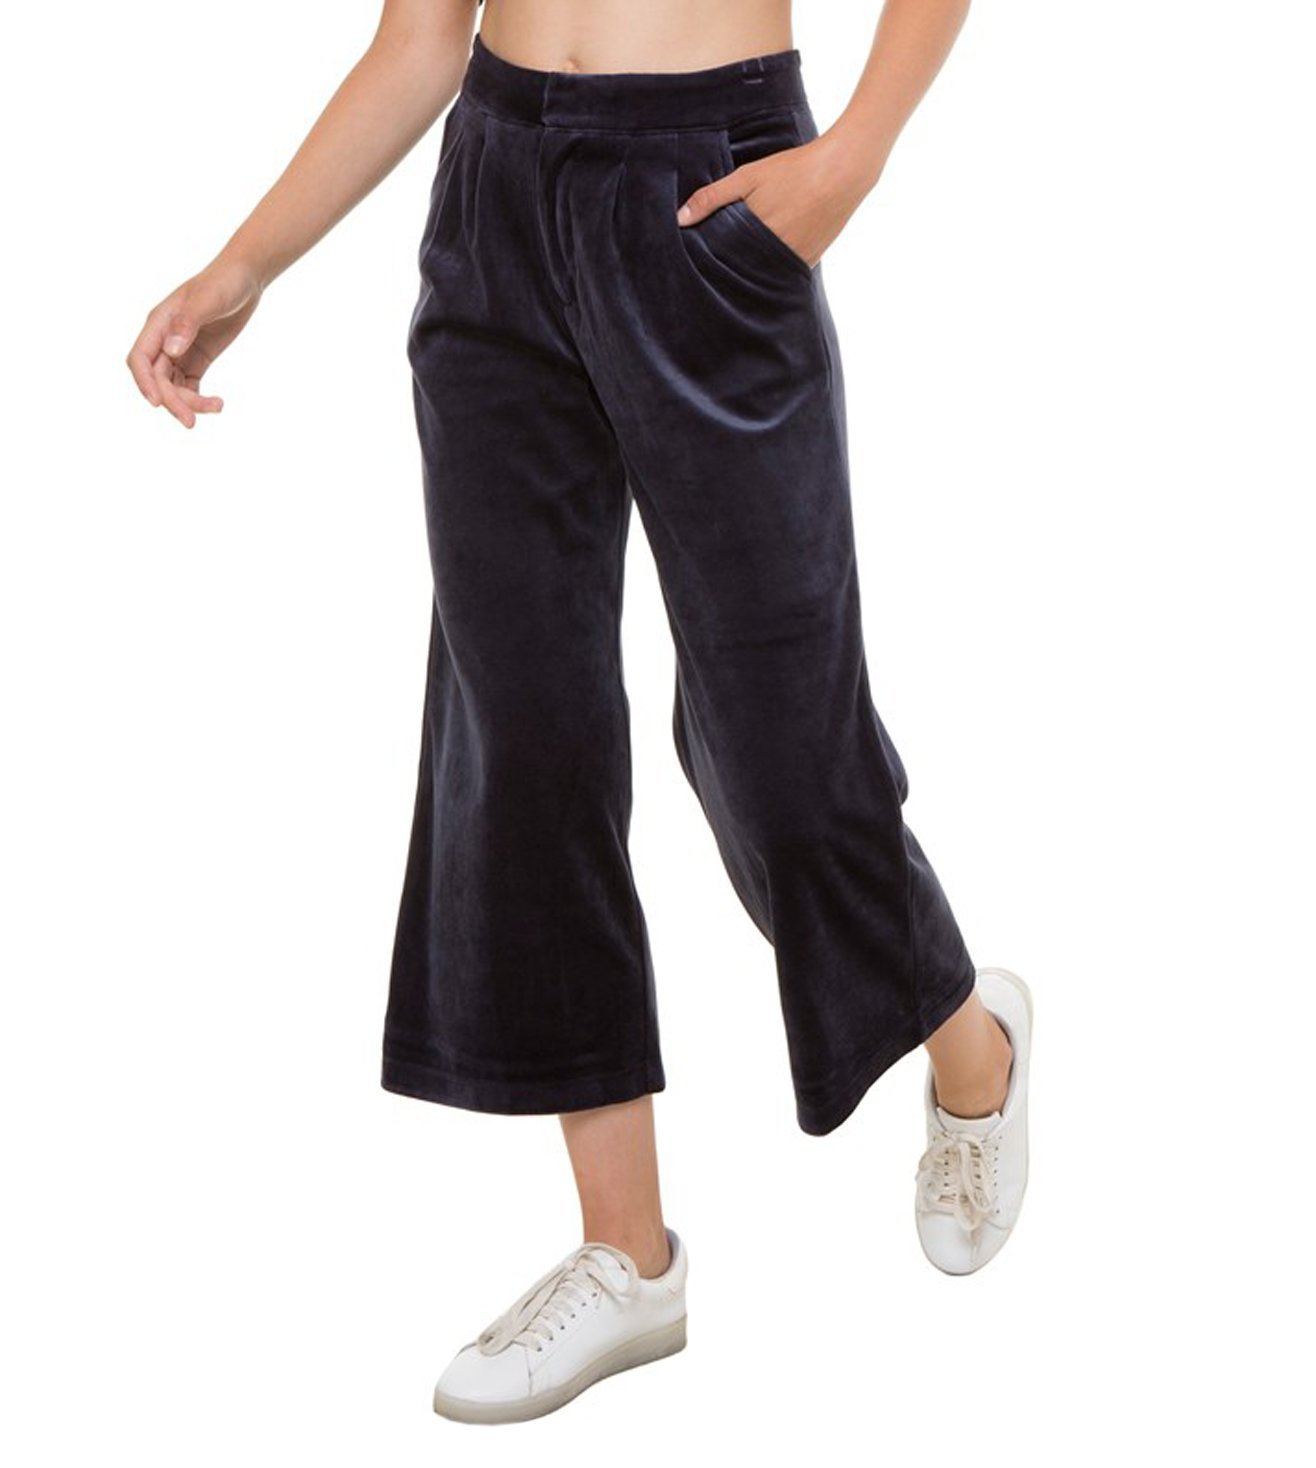 Buy Juicy Couture Regal Velour Cropped Wide Leg Pants For Women Online Tata Cliq Luxury